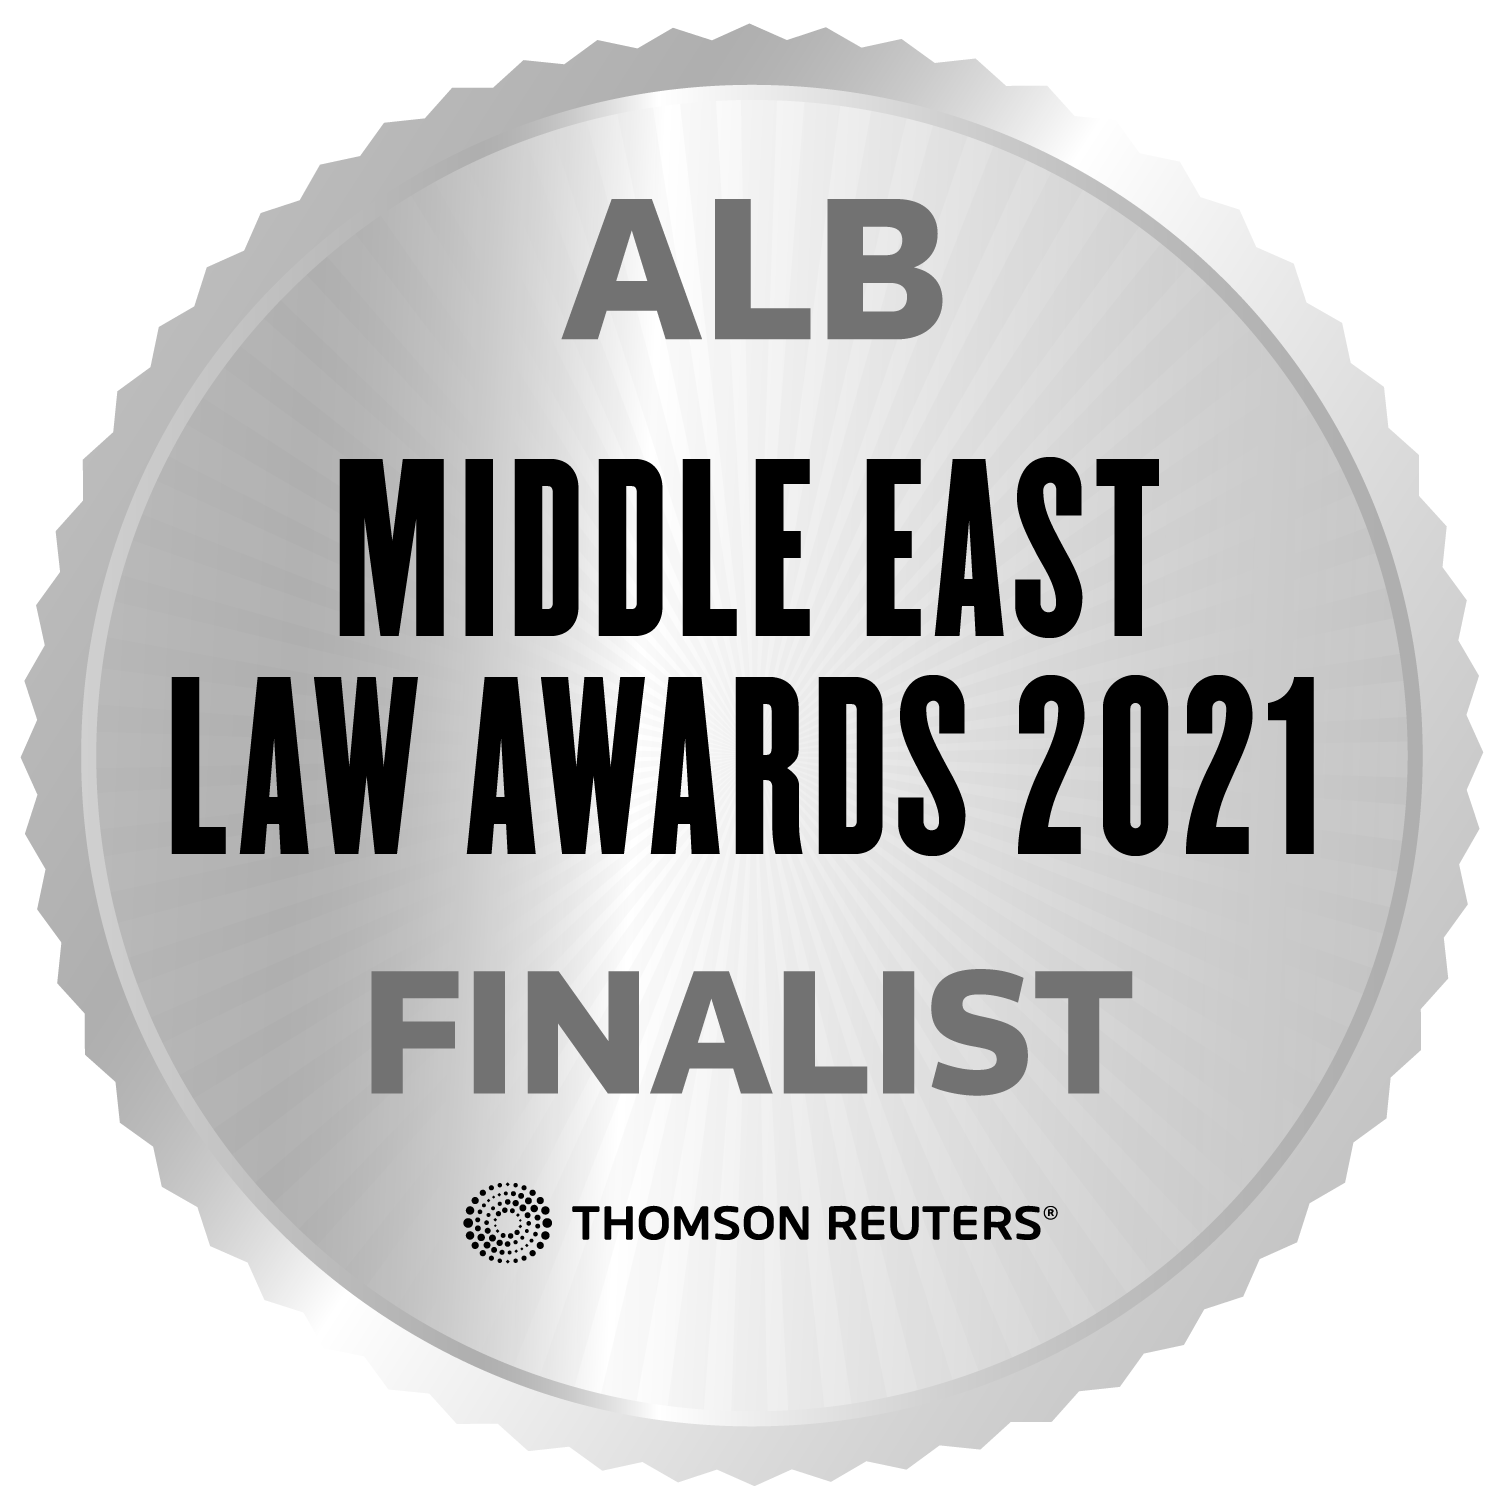 ALB Middle East Law Awards Lebanon Law Firm of the Year